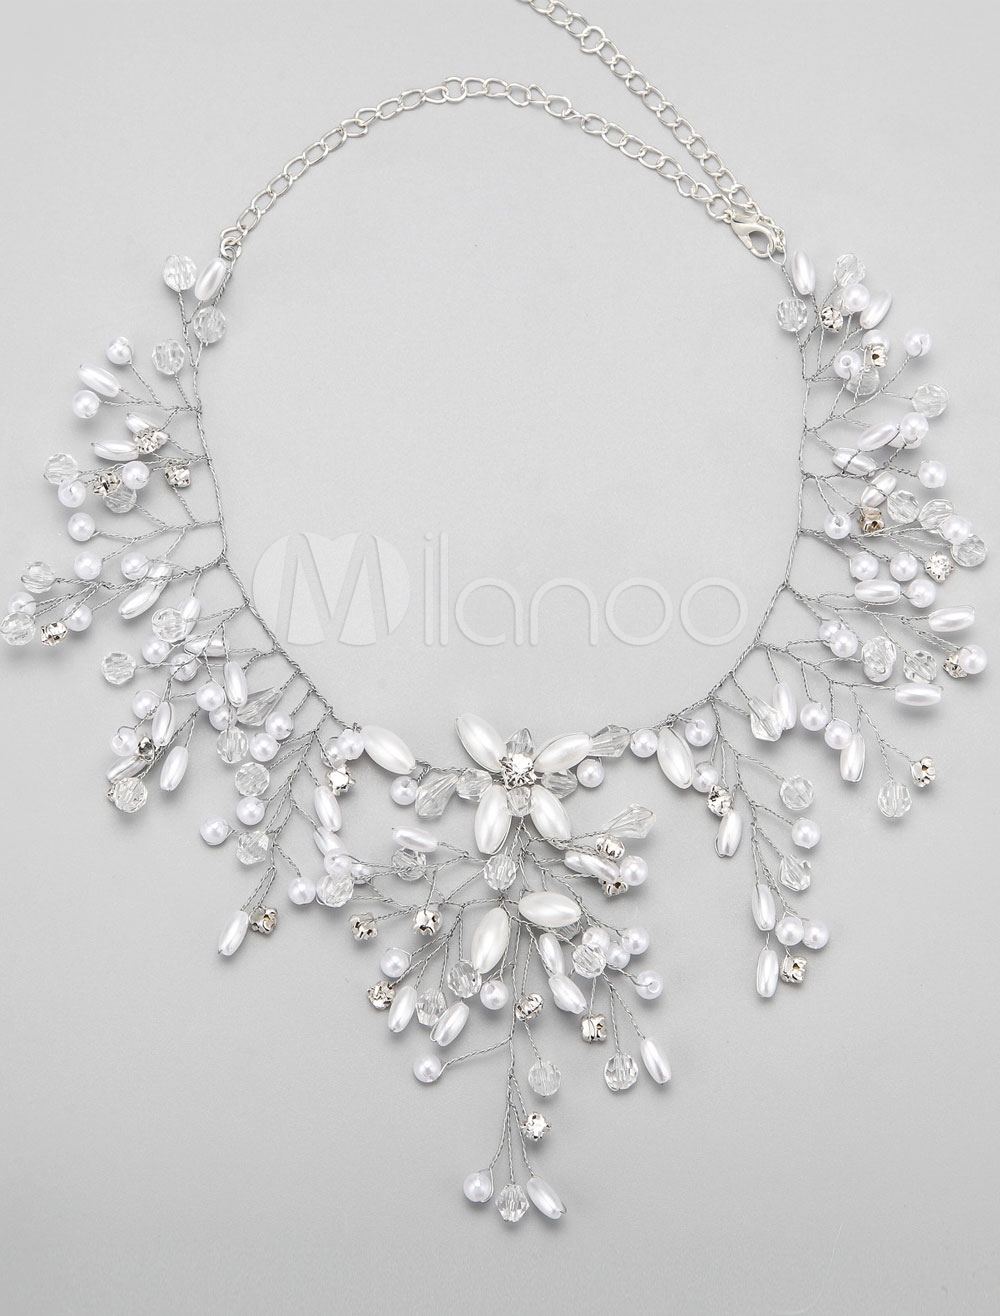 Buy Alloy Wedding Necklace Rhinestone Pearls Decor Bridal Necklace for $16.99 in Milanoo store